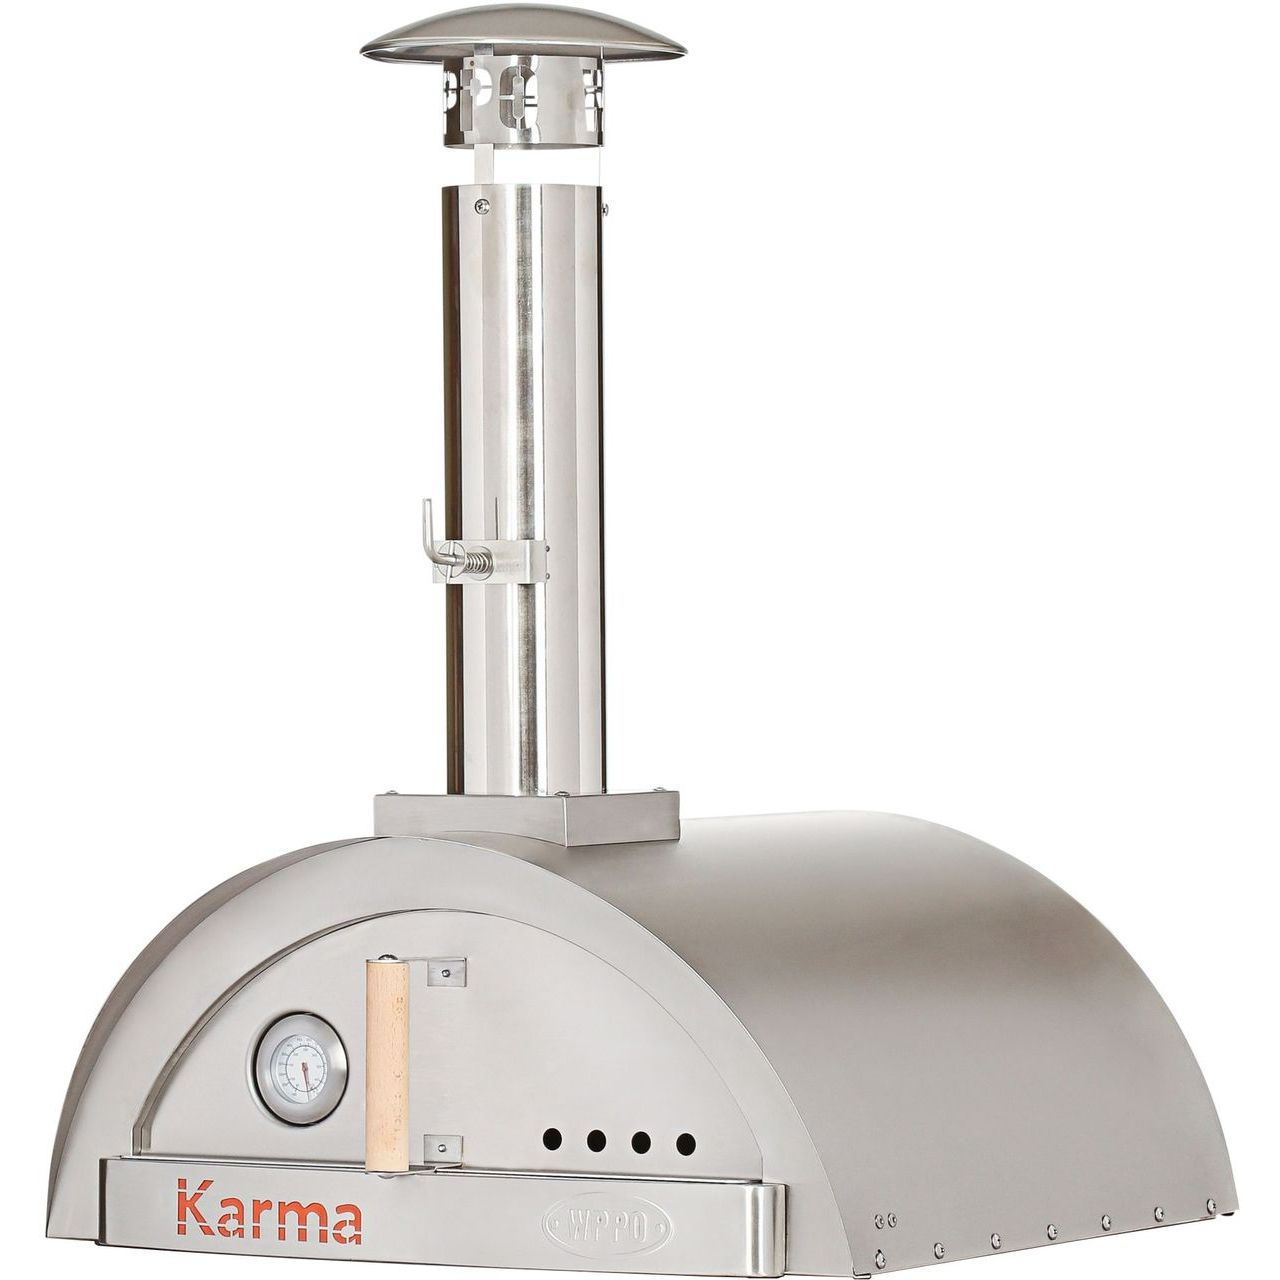 WPPO Karma 25 Wood Fired Pizza Oven Only - Stainless Steel